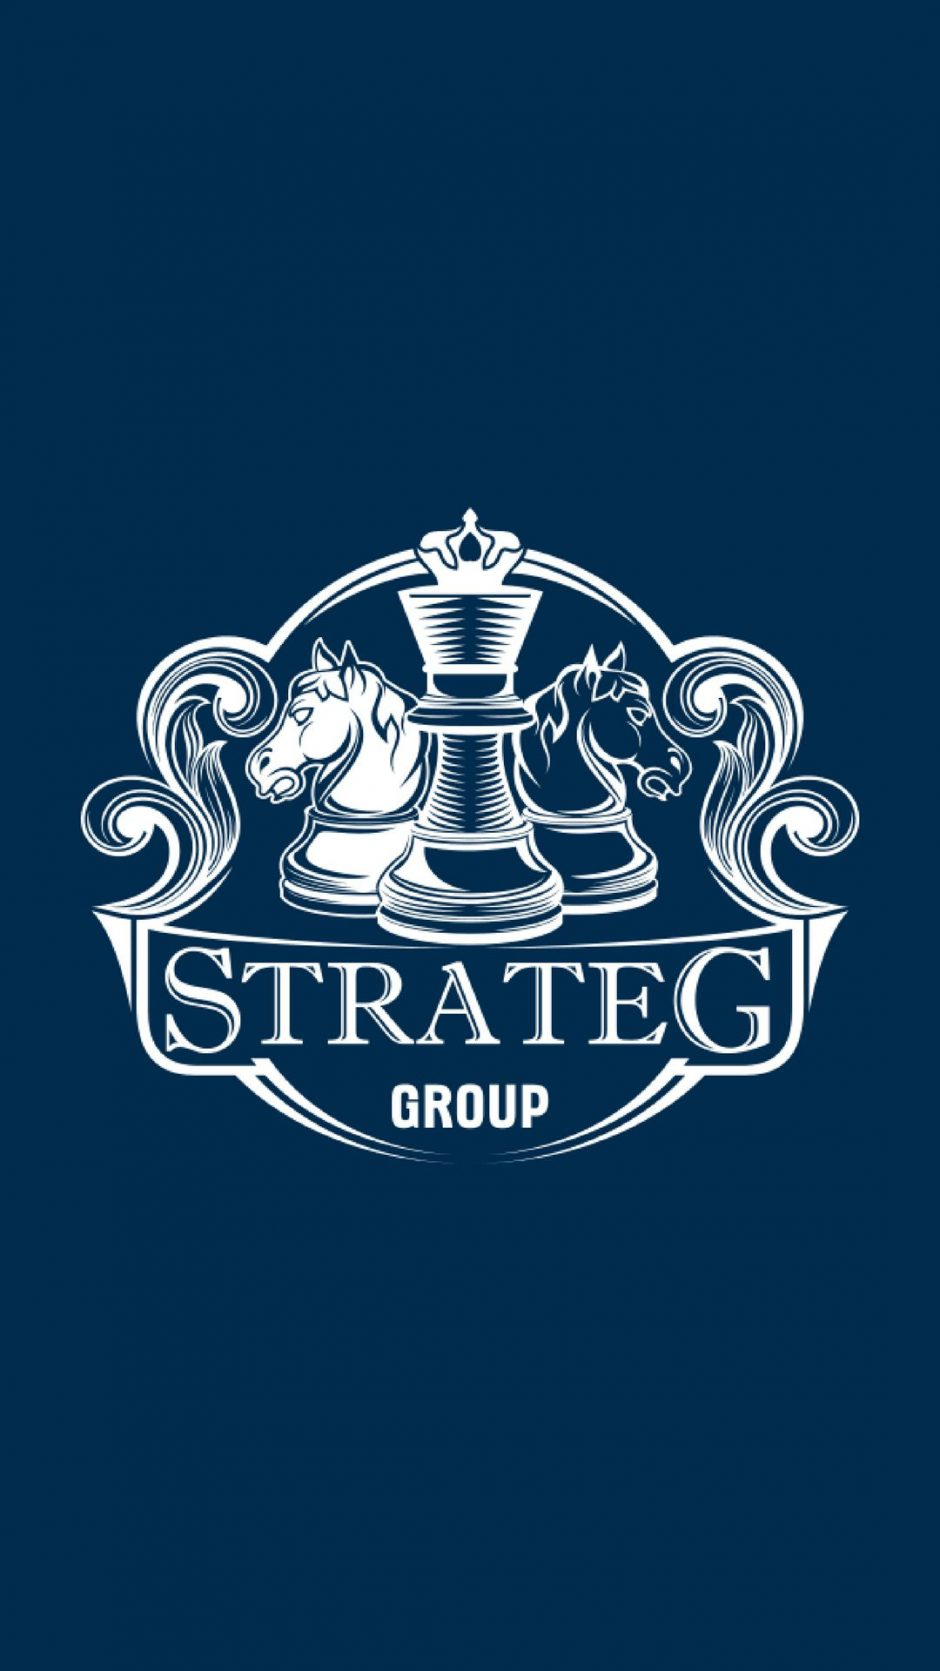 Strateg Group Минск